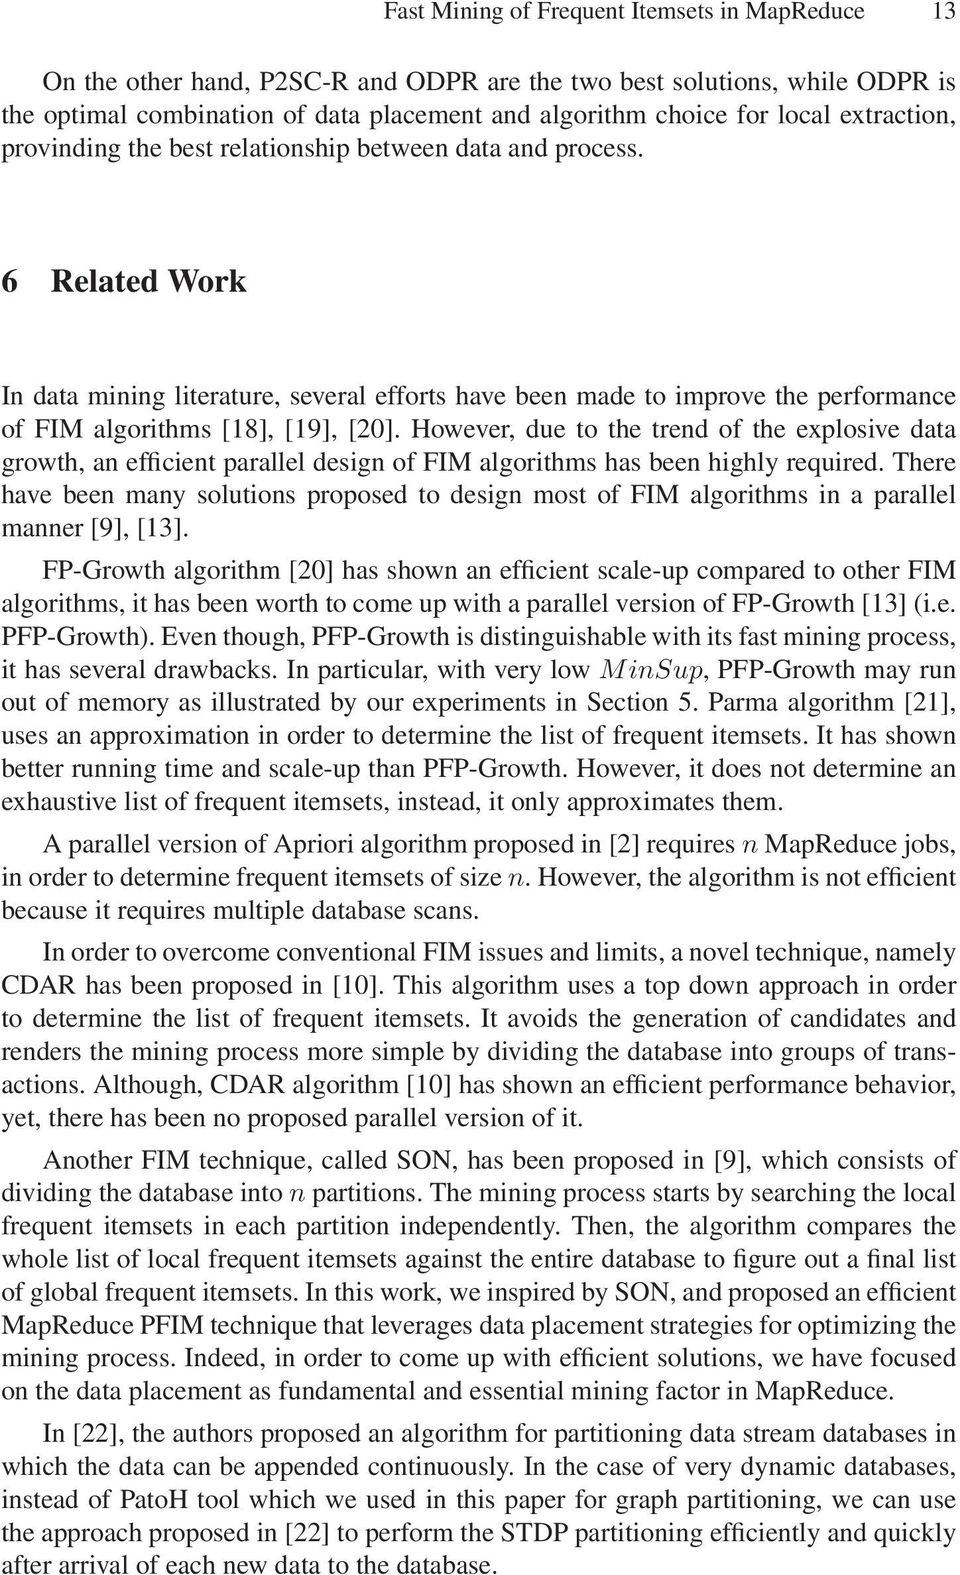 6 Related Work In data mining literature, several efforts have been made to improve the performance of FIM algorithms [18], [19], [20].